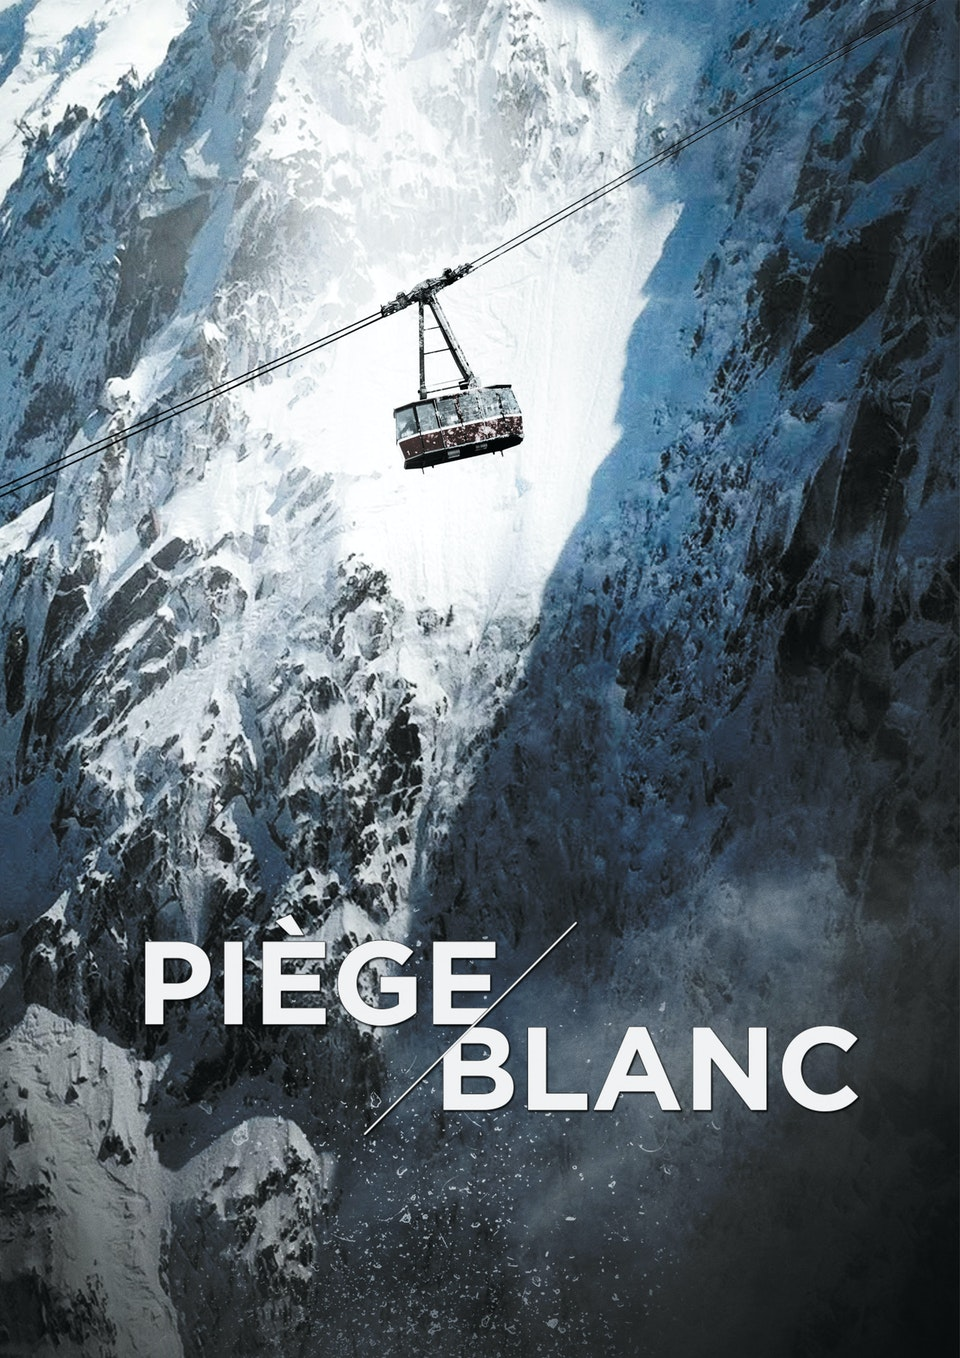 PIEGE BLANC - 2nd Unit